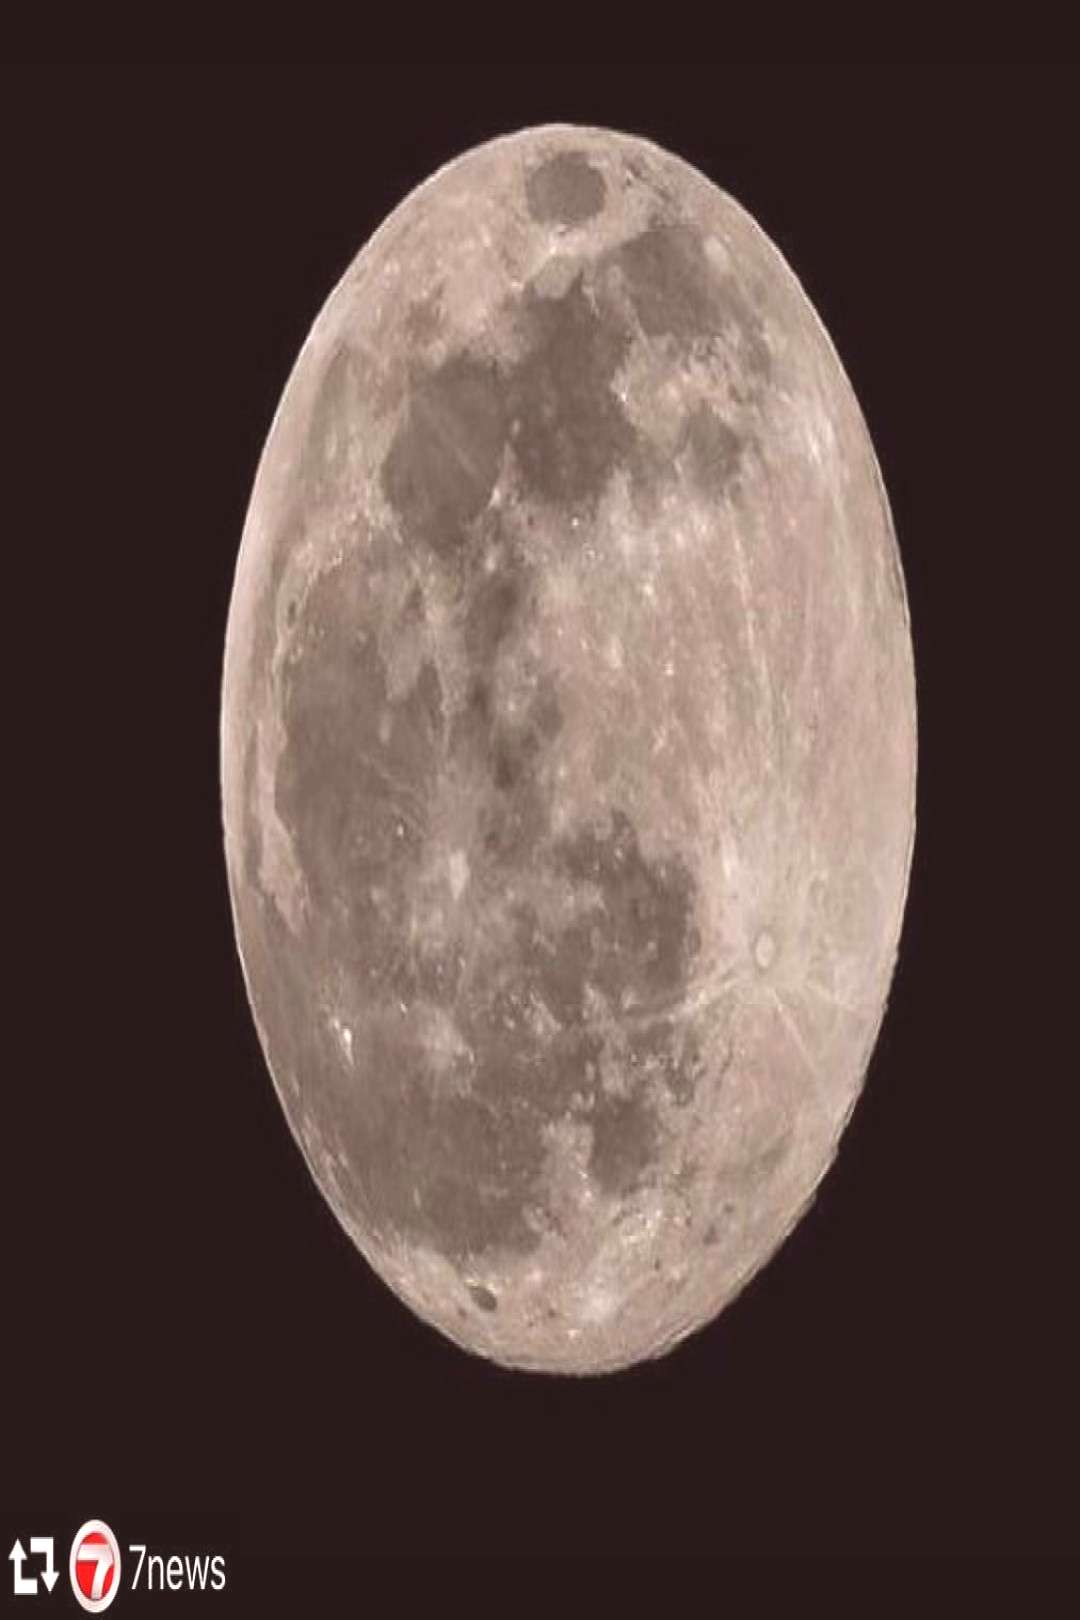 Its the moon rabbit A mythical figure who lives on the Moon in F